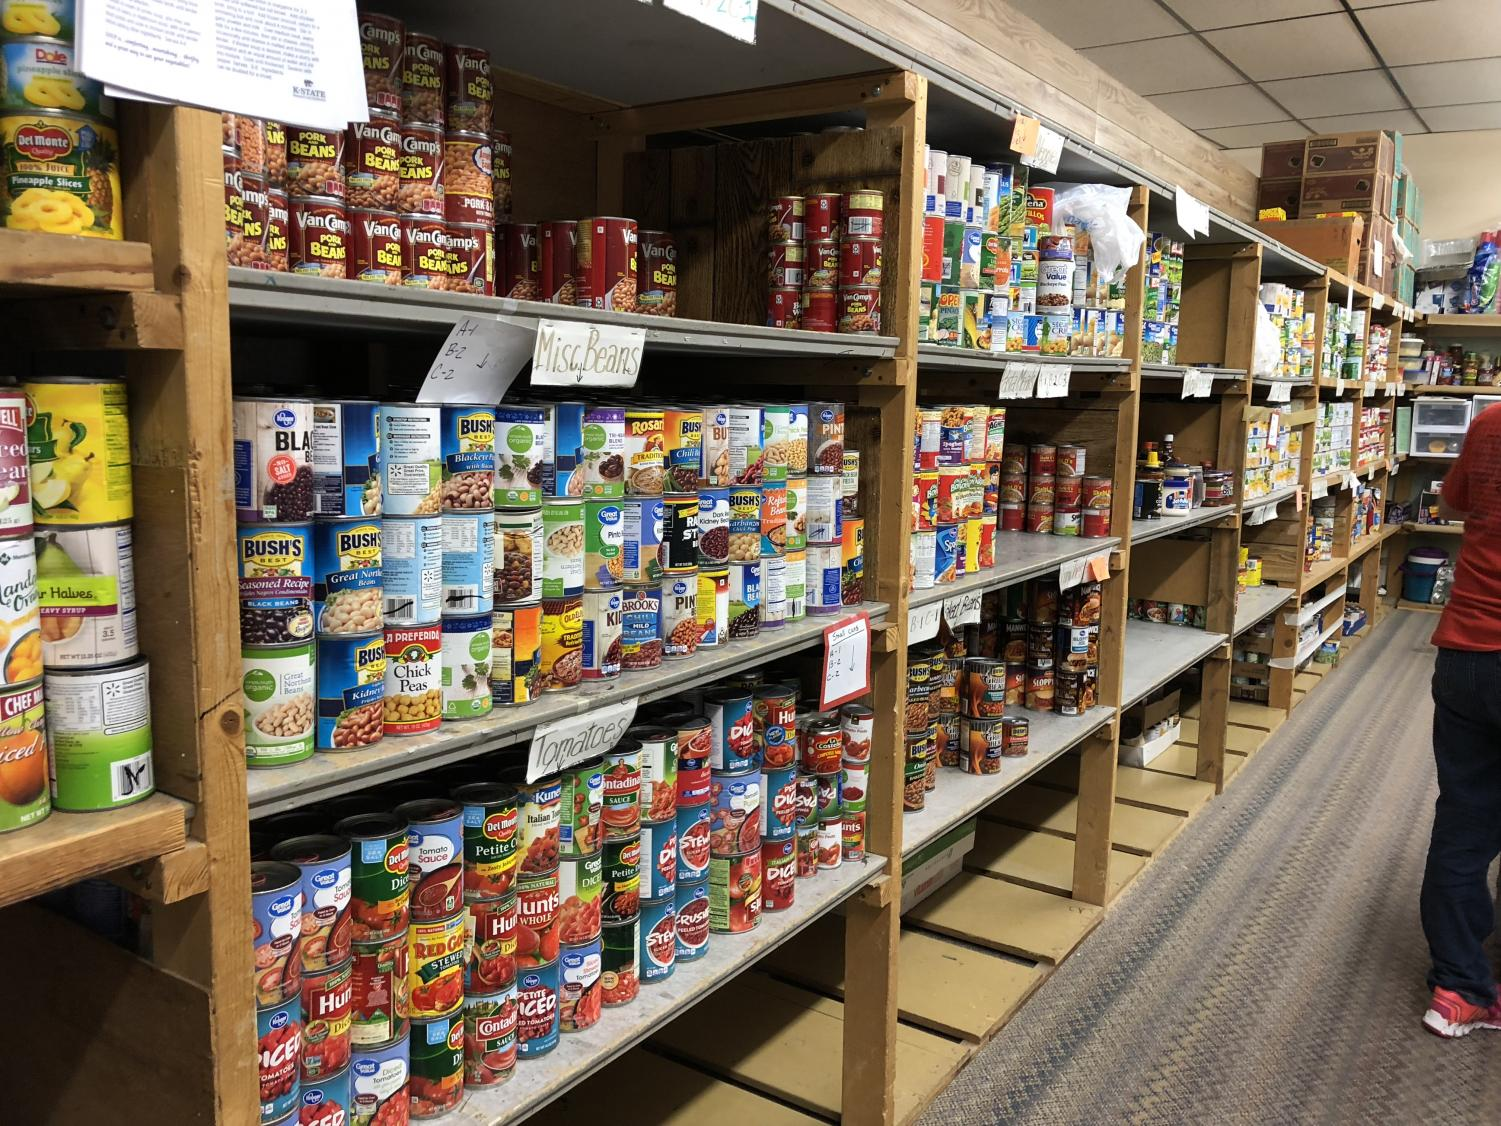 Volunteers+helped+fill+the+shelves+of+the+Community+Assistance+Center.+Previously%2C+the+shelves+had+gotten+pretty+low%2C+but+now+needy+families+will+be+able+to+get+free+meals+from+the+shelves.